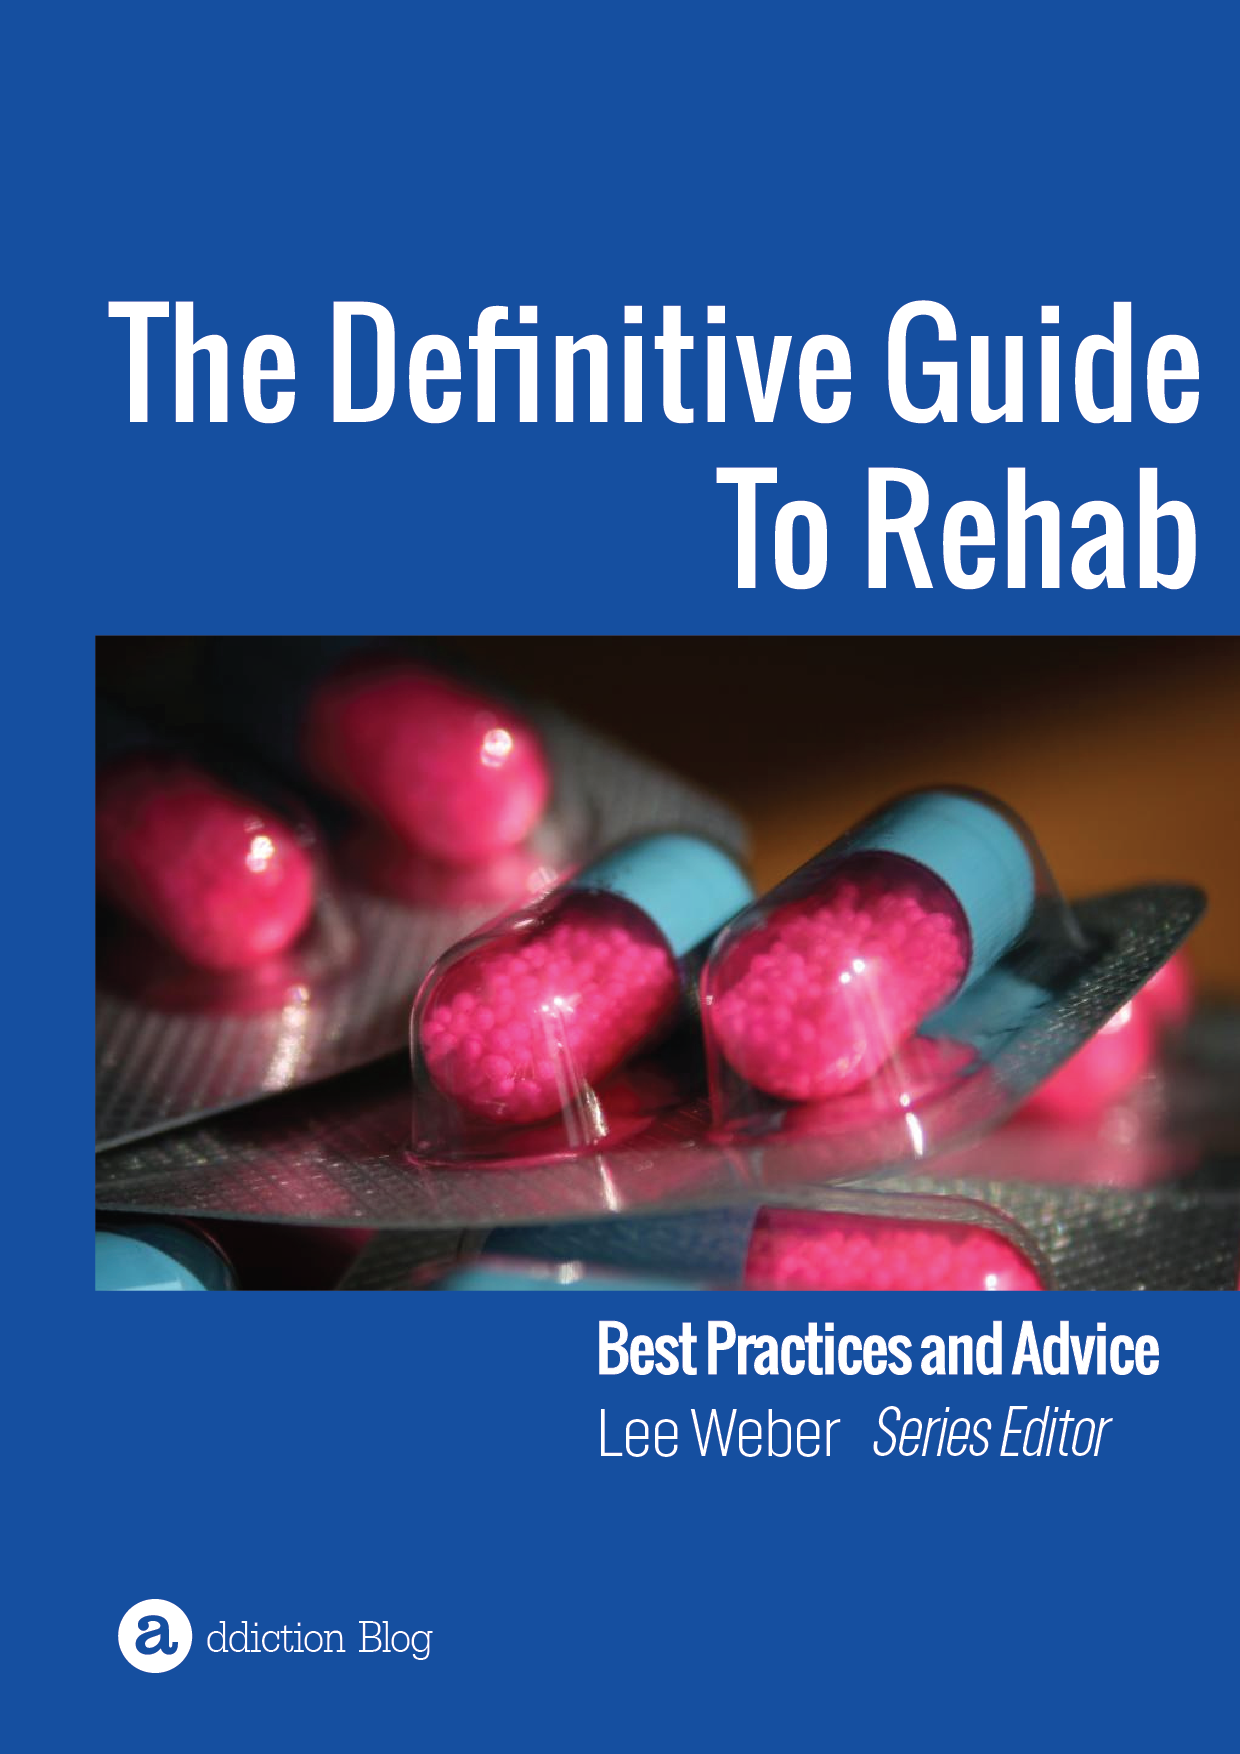 The Definitive Guide to Rehab